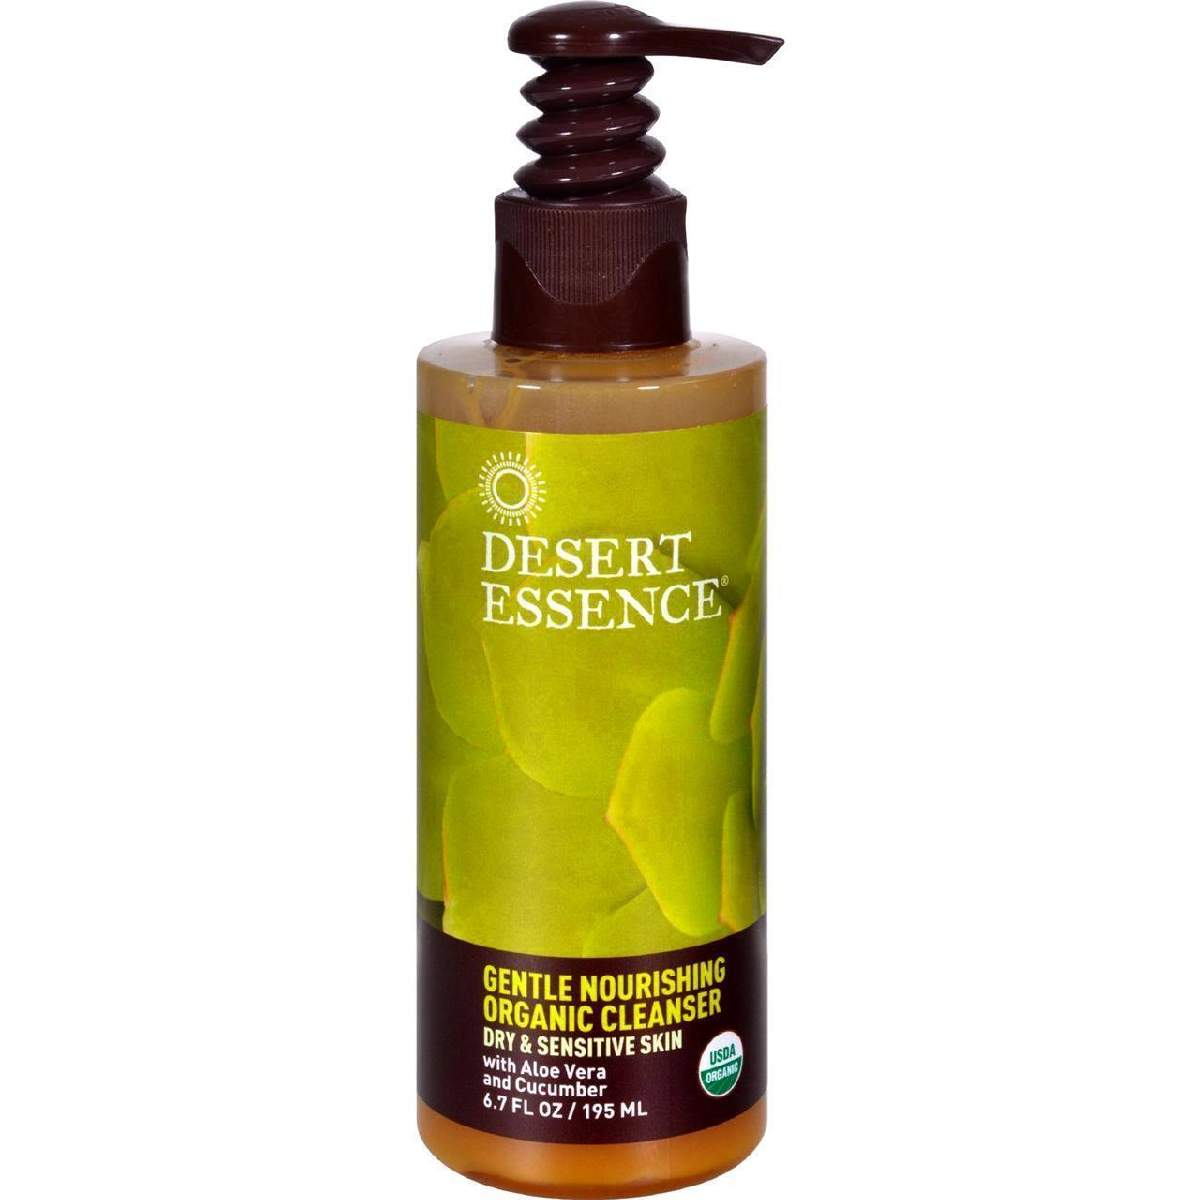 Desert Essence Gentle Nourishing Organic Cleanser - 6.7 Fl Oz